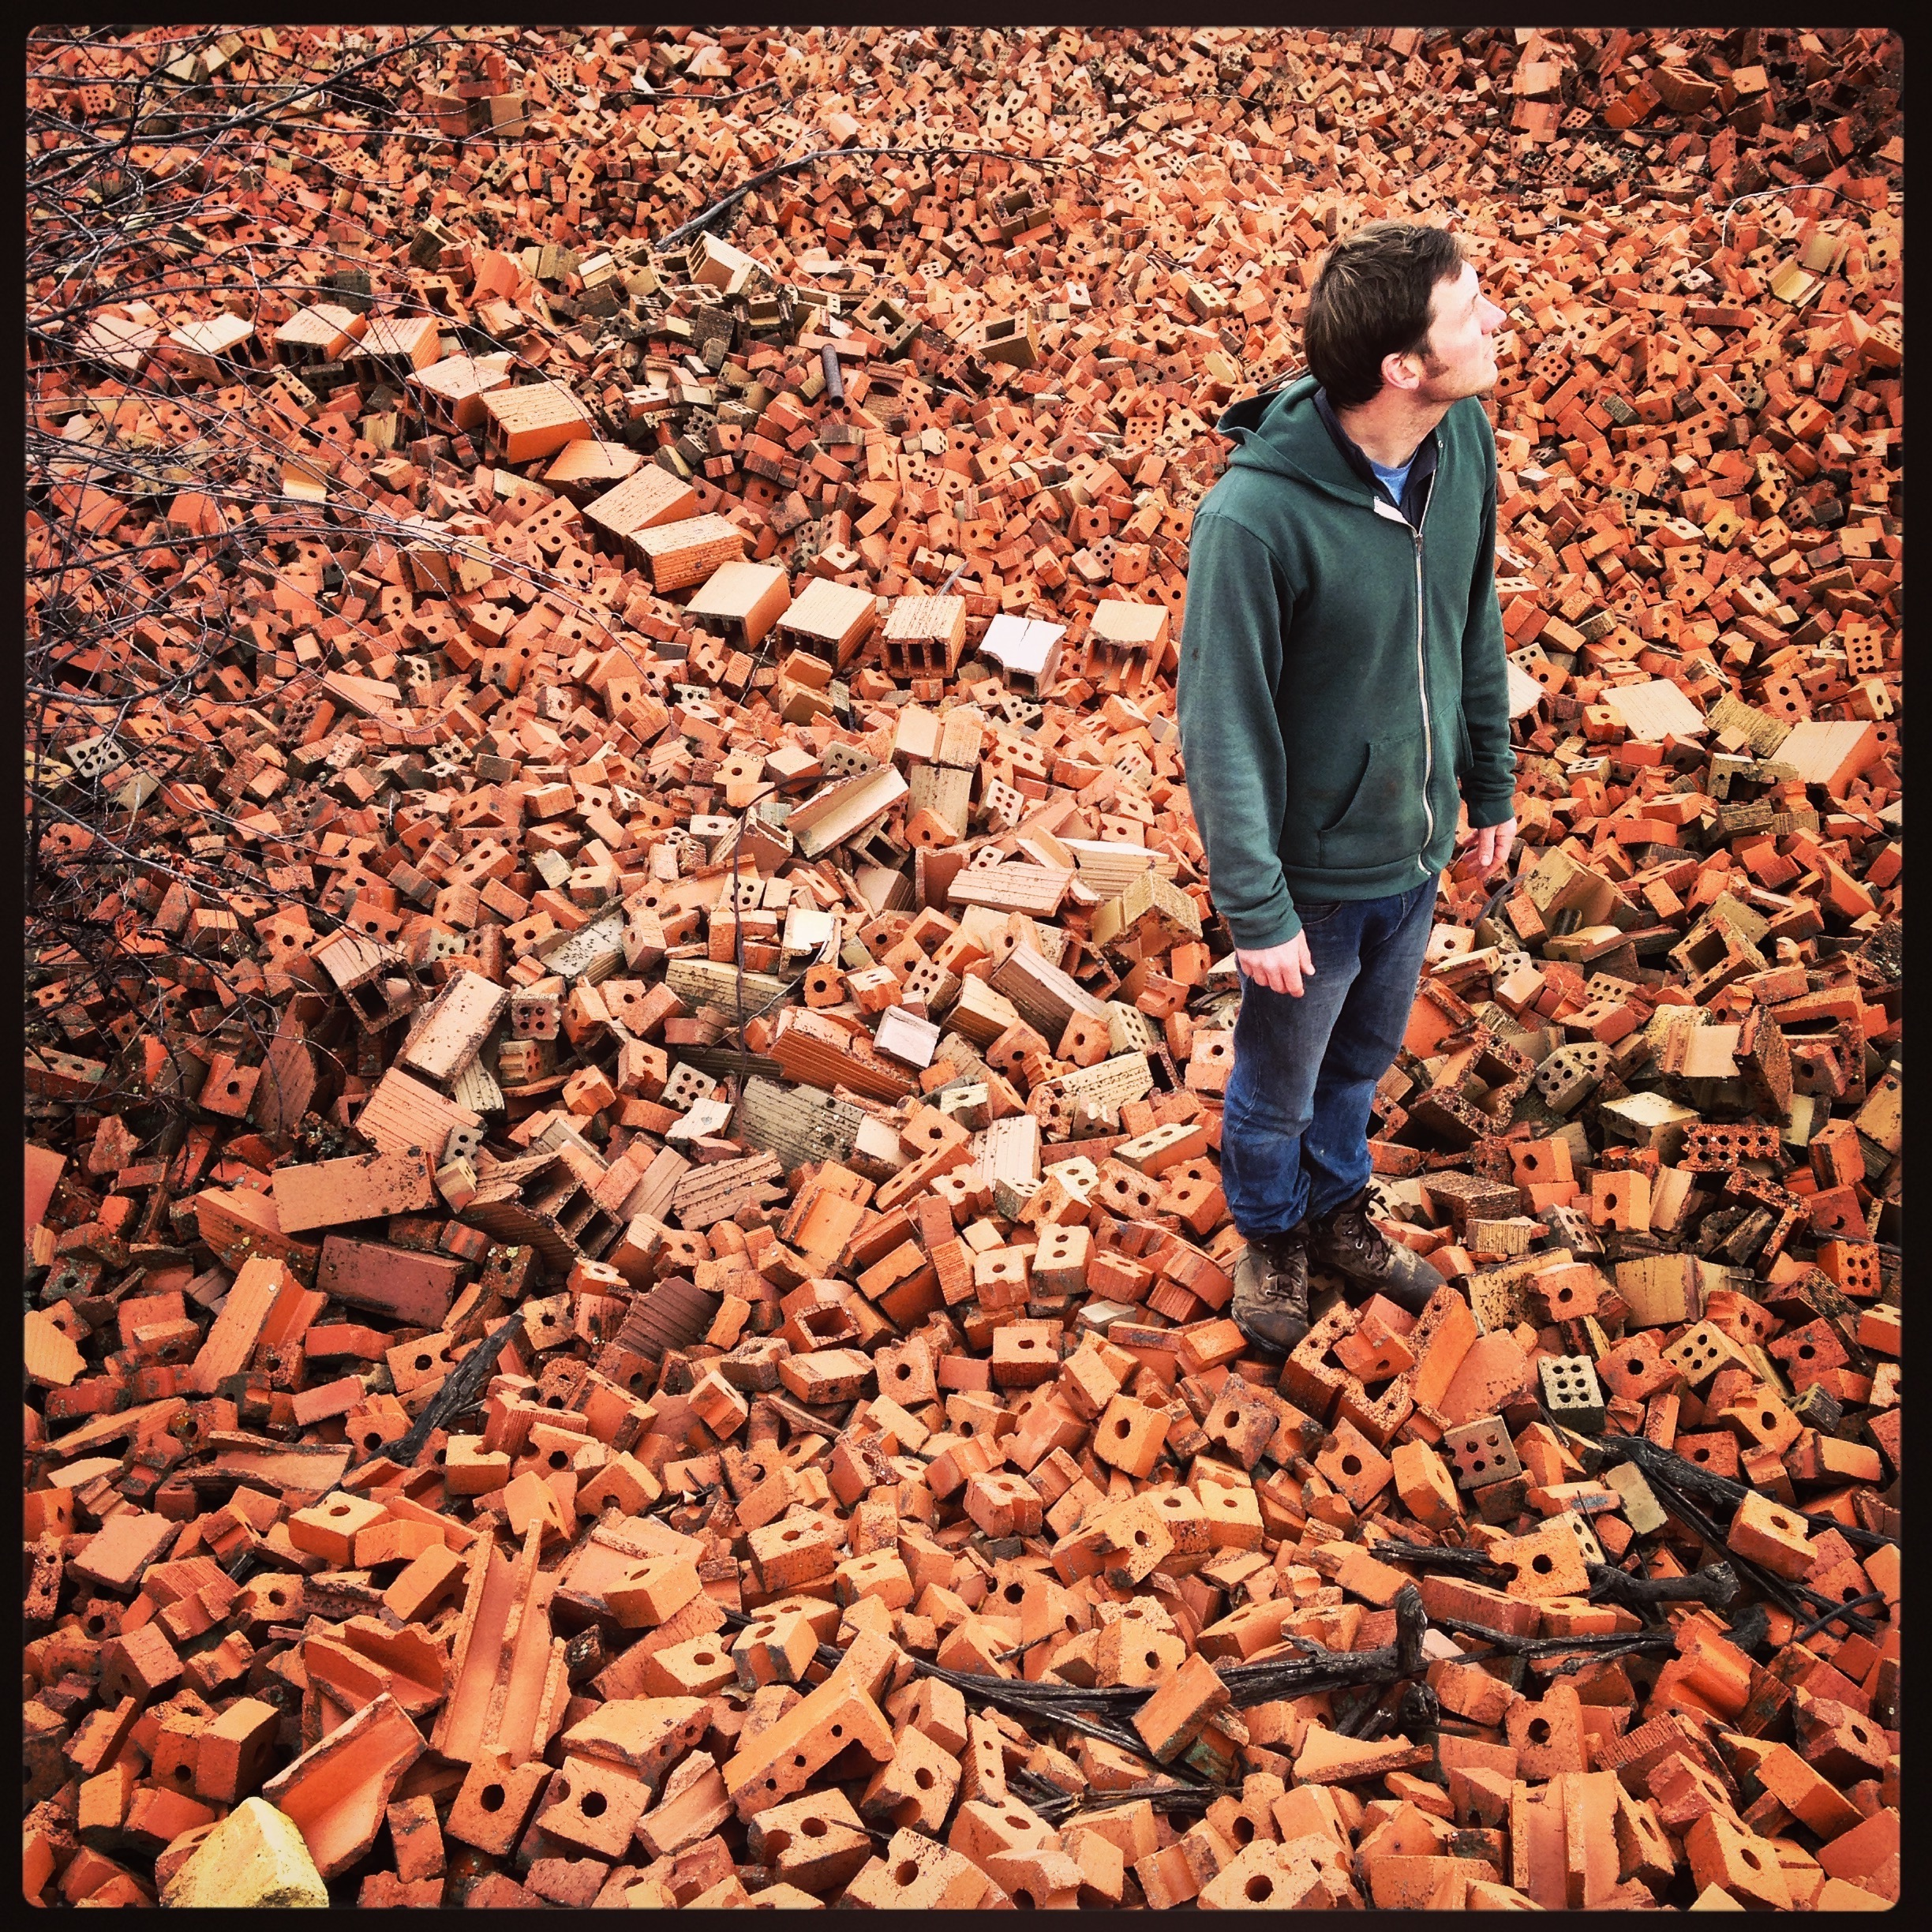 Josh Copus_portrait with brick pile_large.jpg